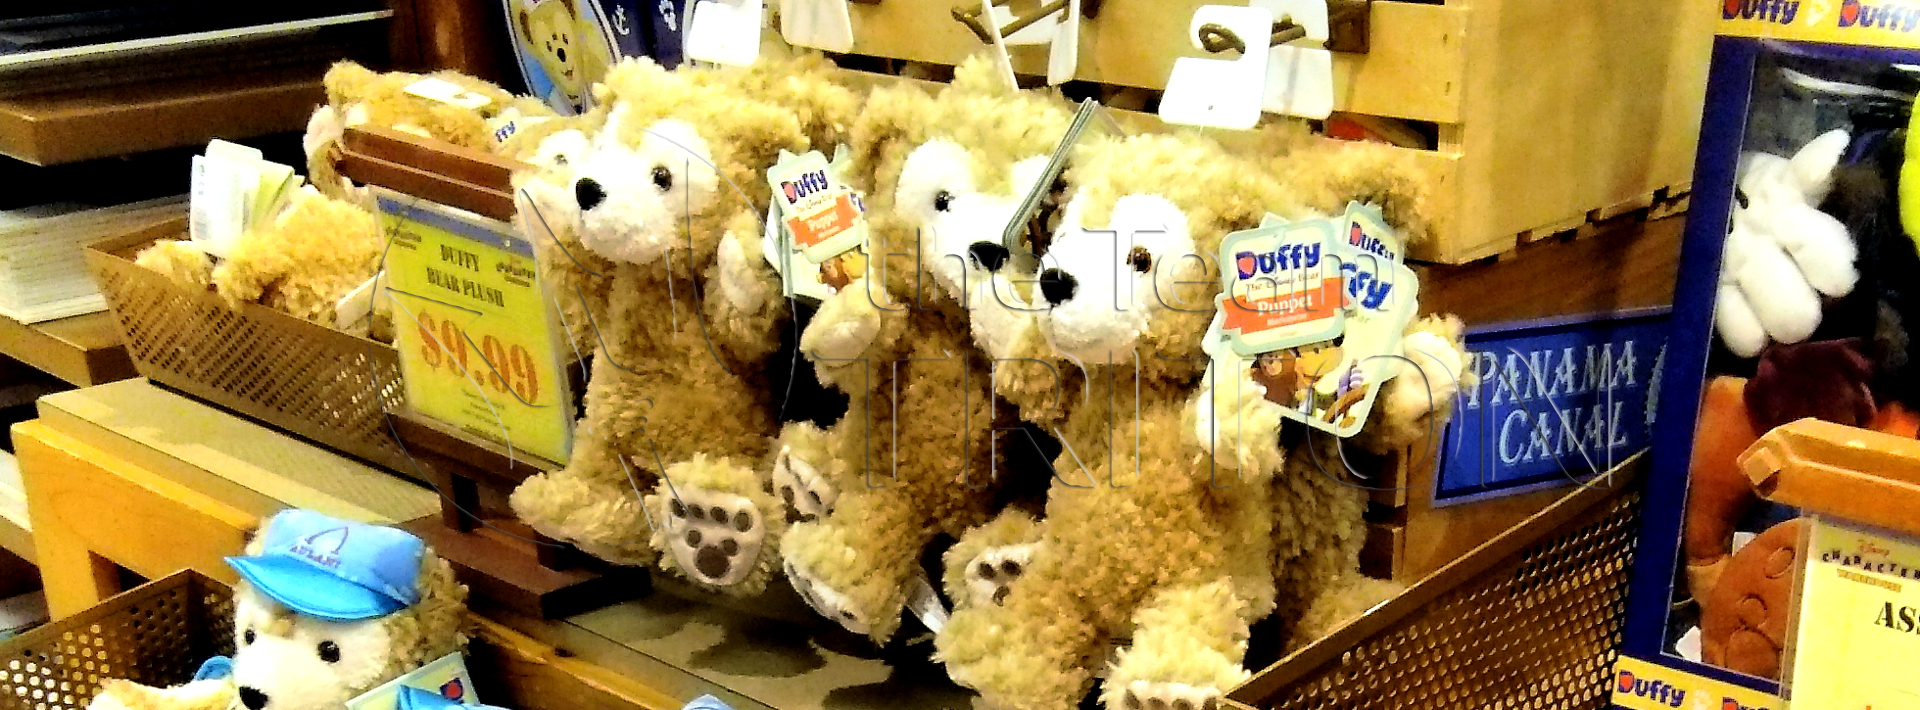 duffy-outlet-eye-catch